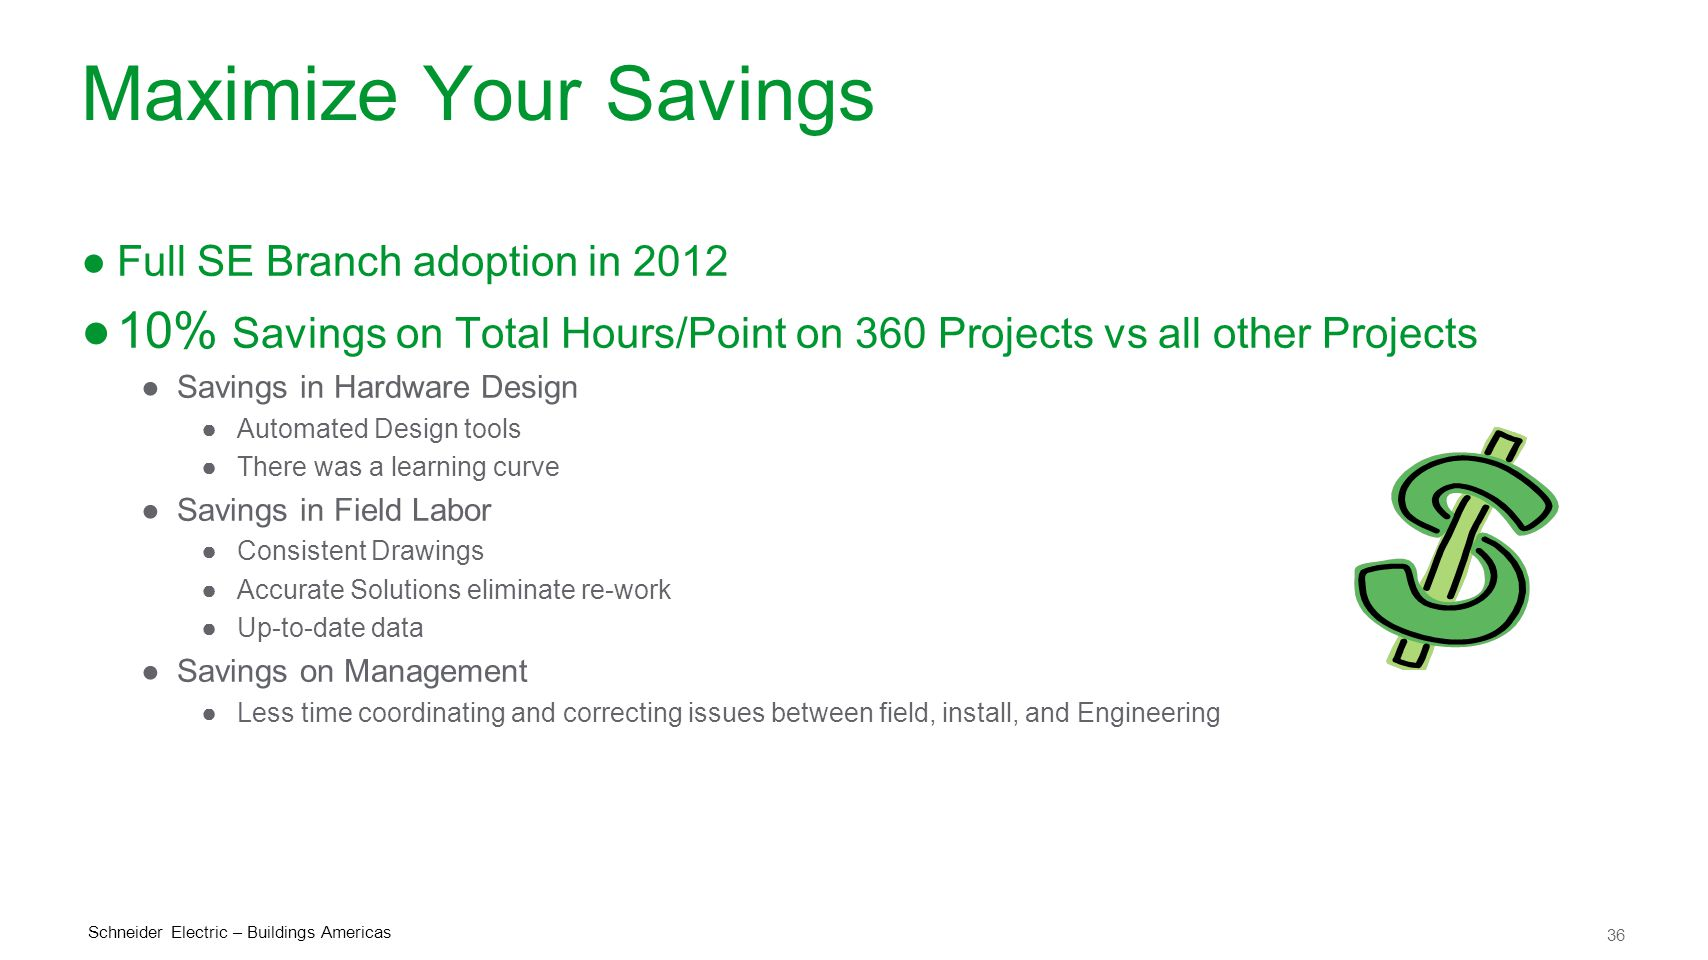 Maximize Your Savings Full SE Branch adoption in 2012. 10% Savings on Total Hours/Point on 360 Projects vs all other Projects.